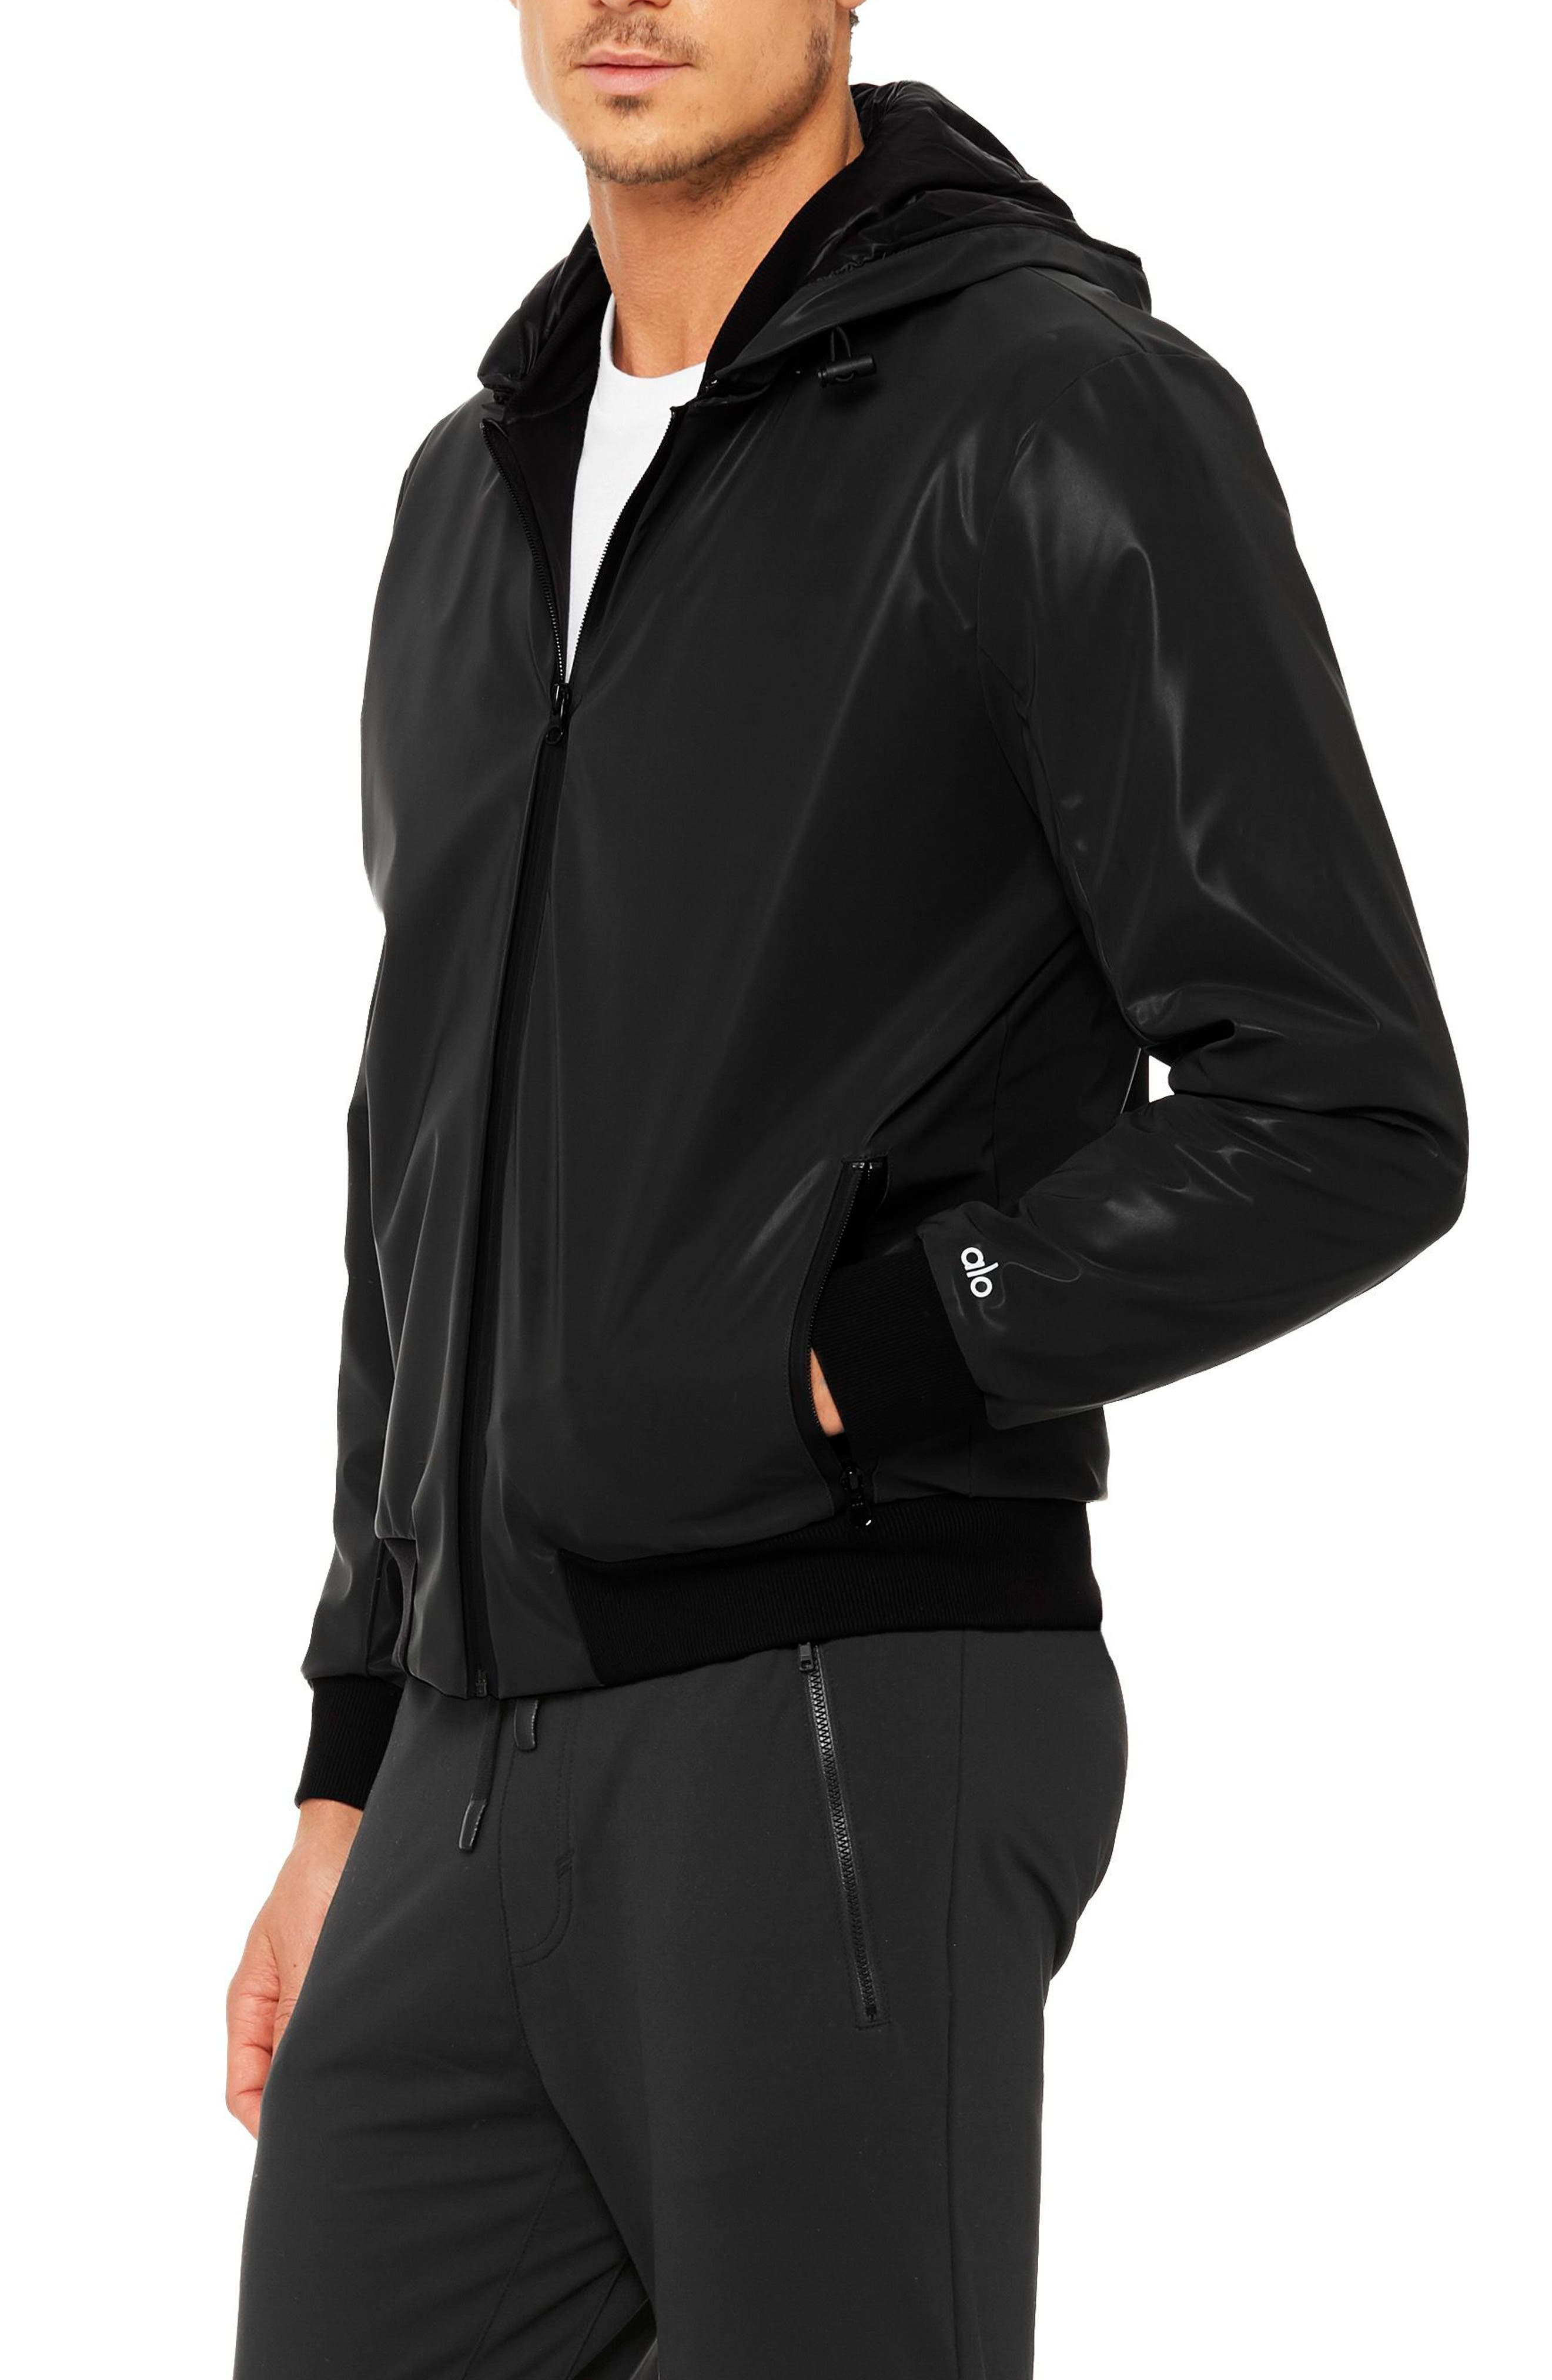 Fleet Bomber Jacket,                             Alternate thumbnail 2, color,                             Black